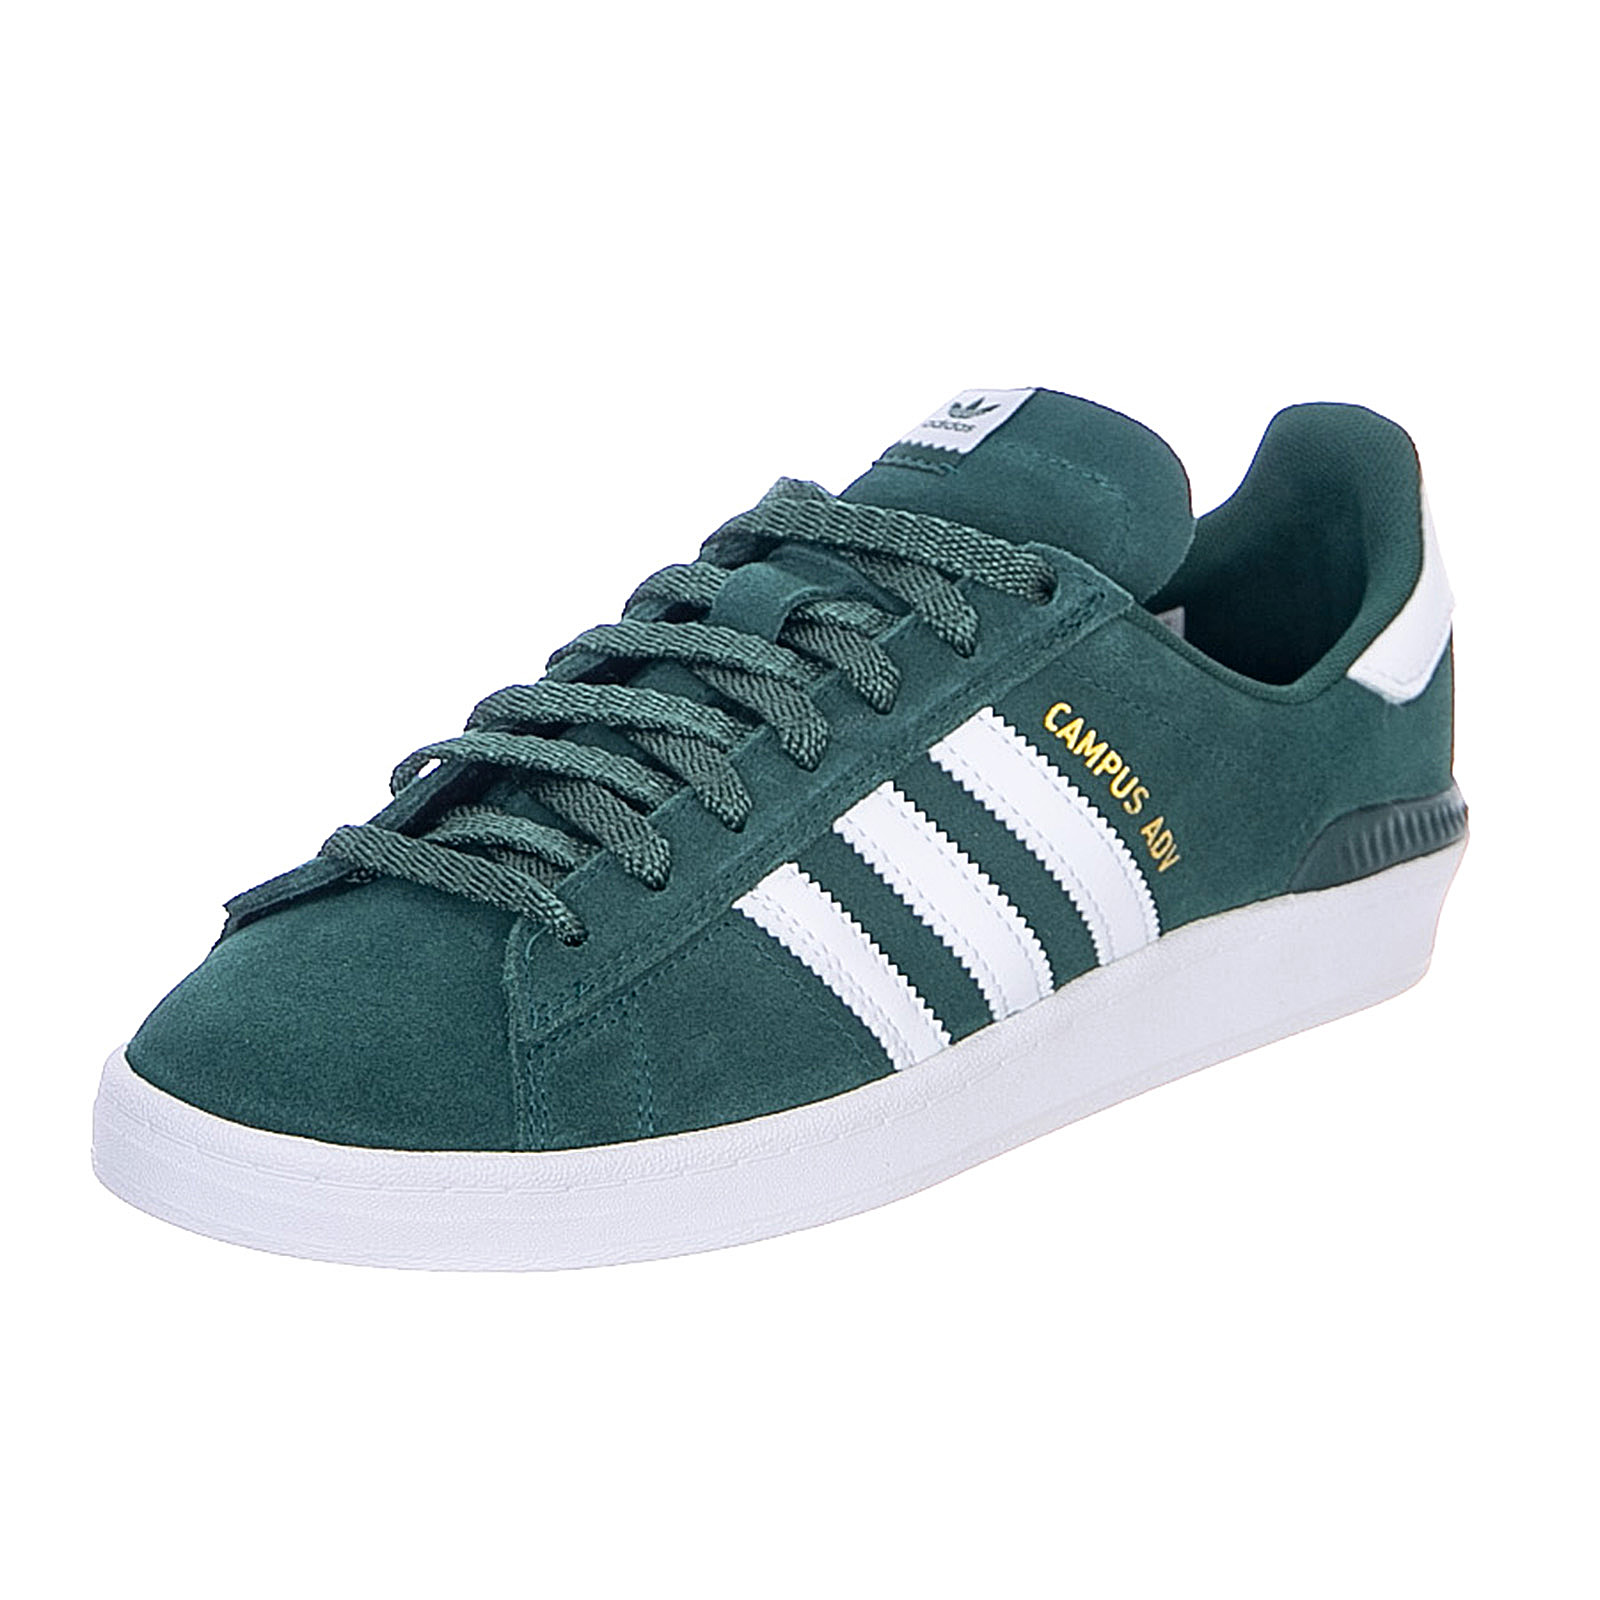 Details about Adidas Campus Adv Collegiate Green / Cloud White/Gold  Metallic Sneakers Mens